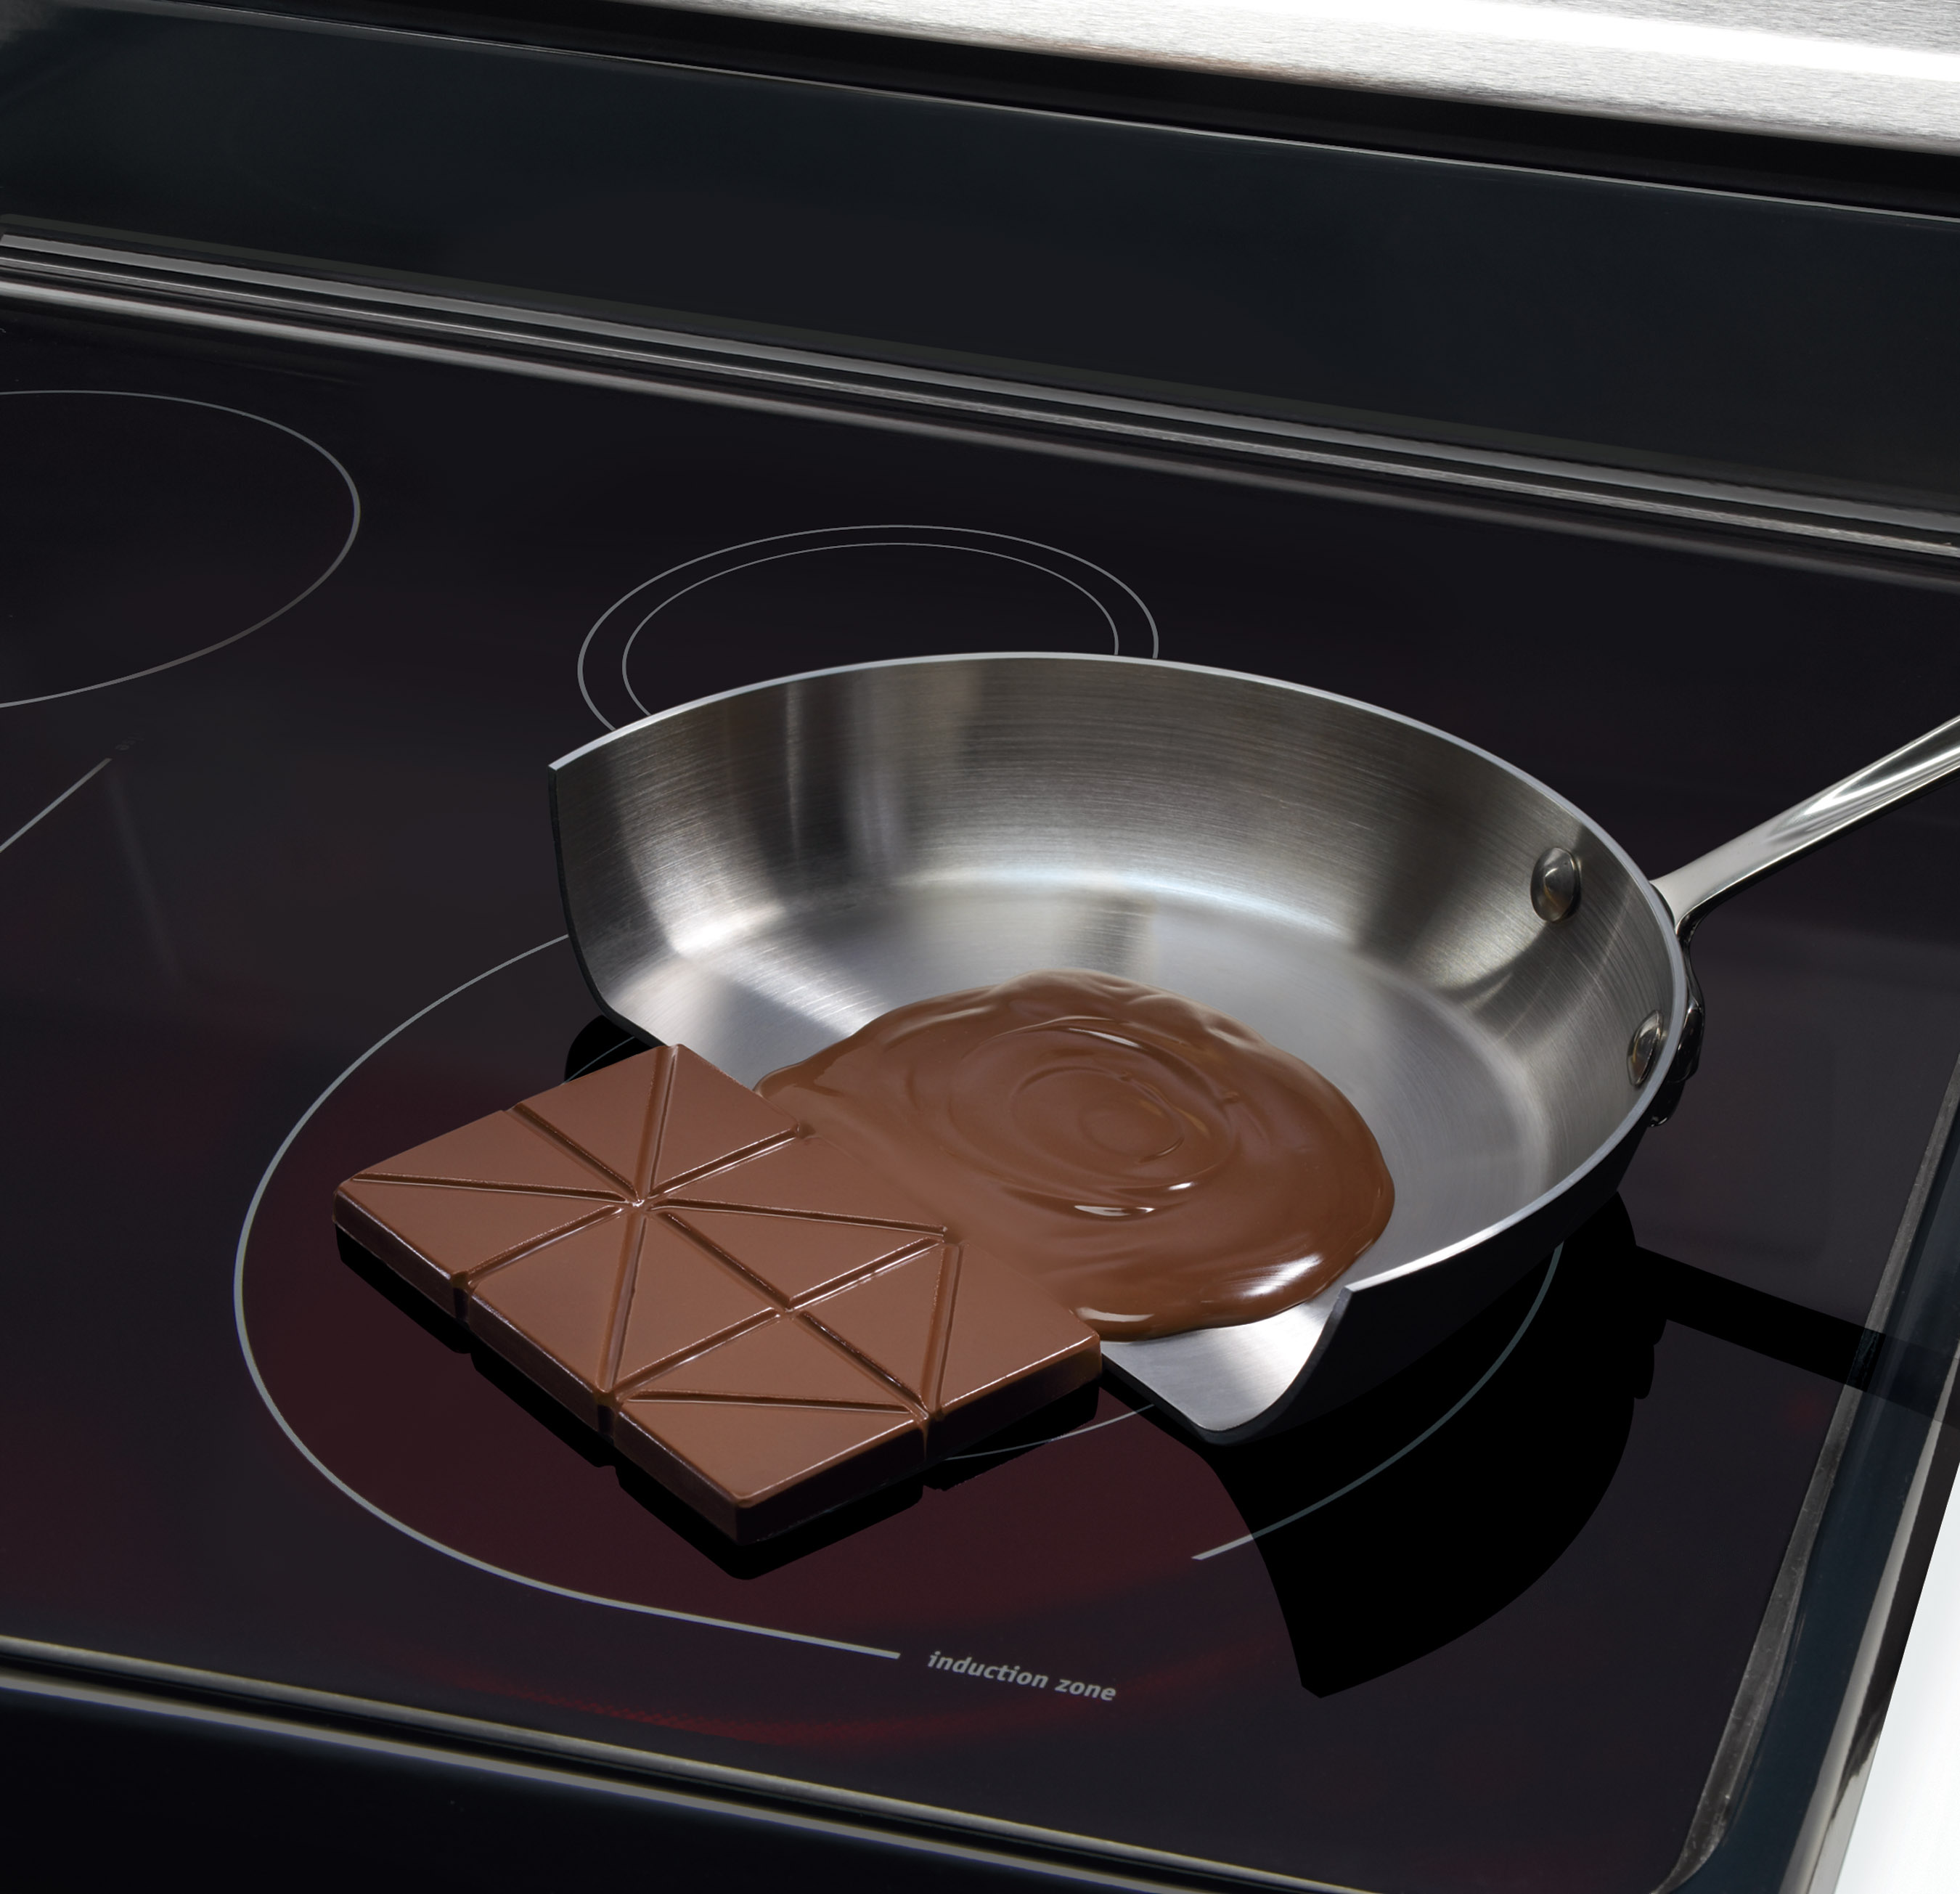 How The Smart Kitchen May Help Induction Cooking Finally Heat Up